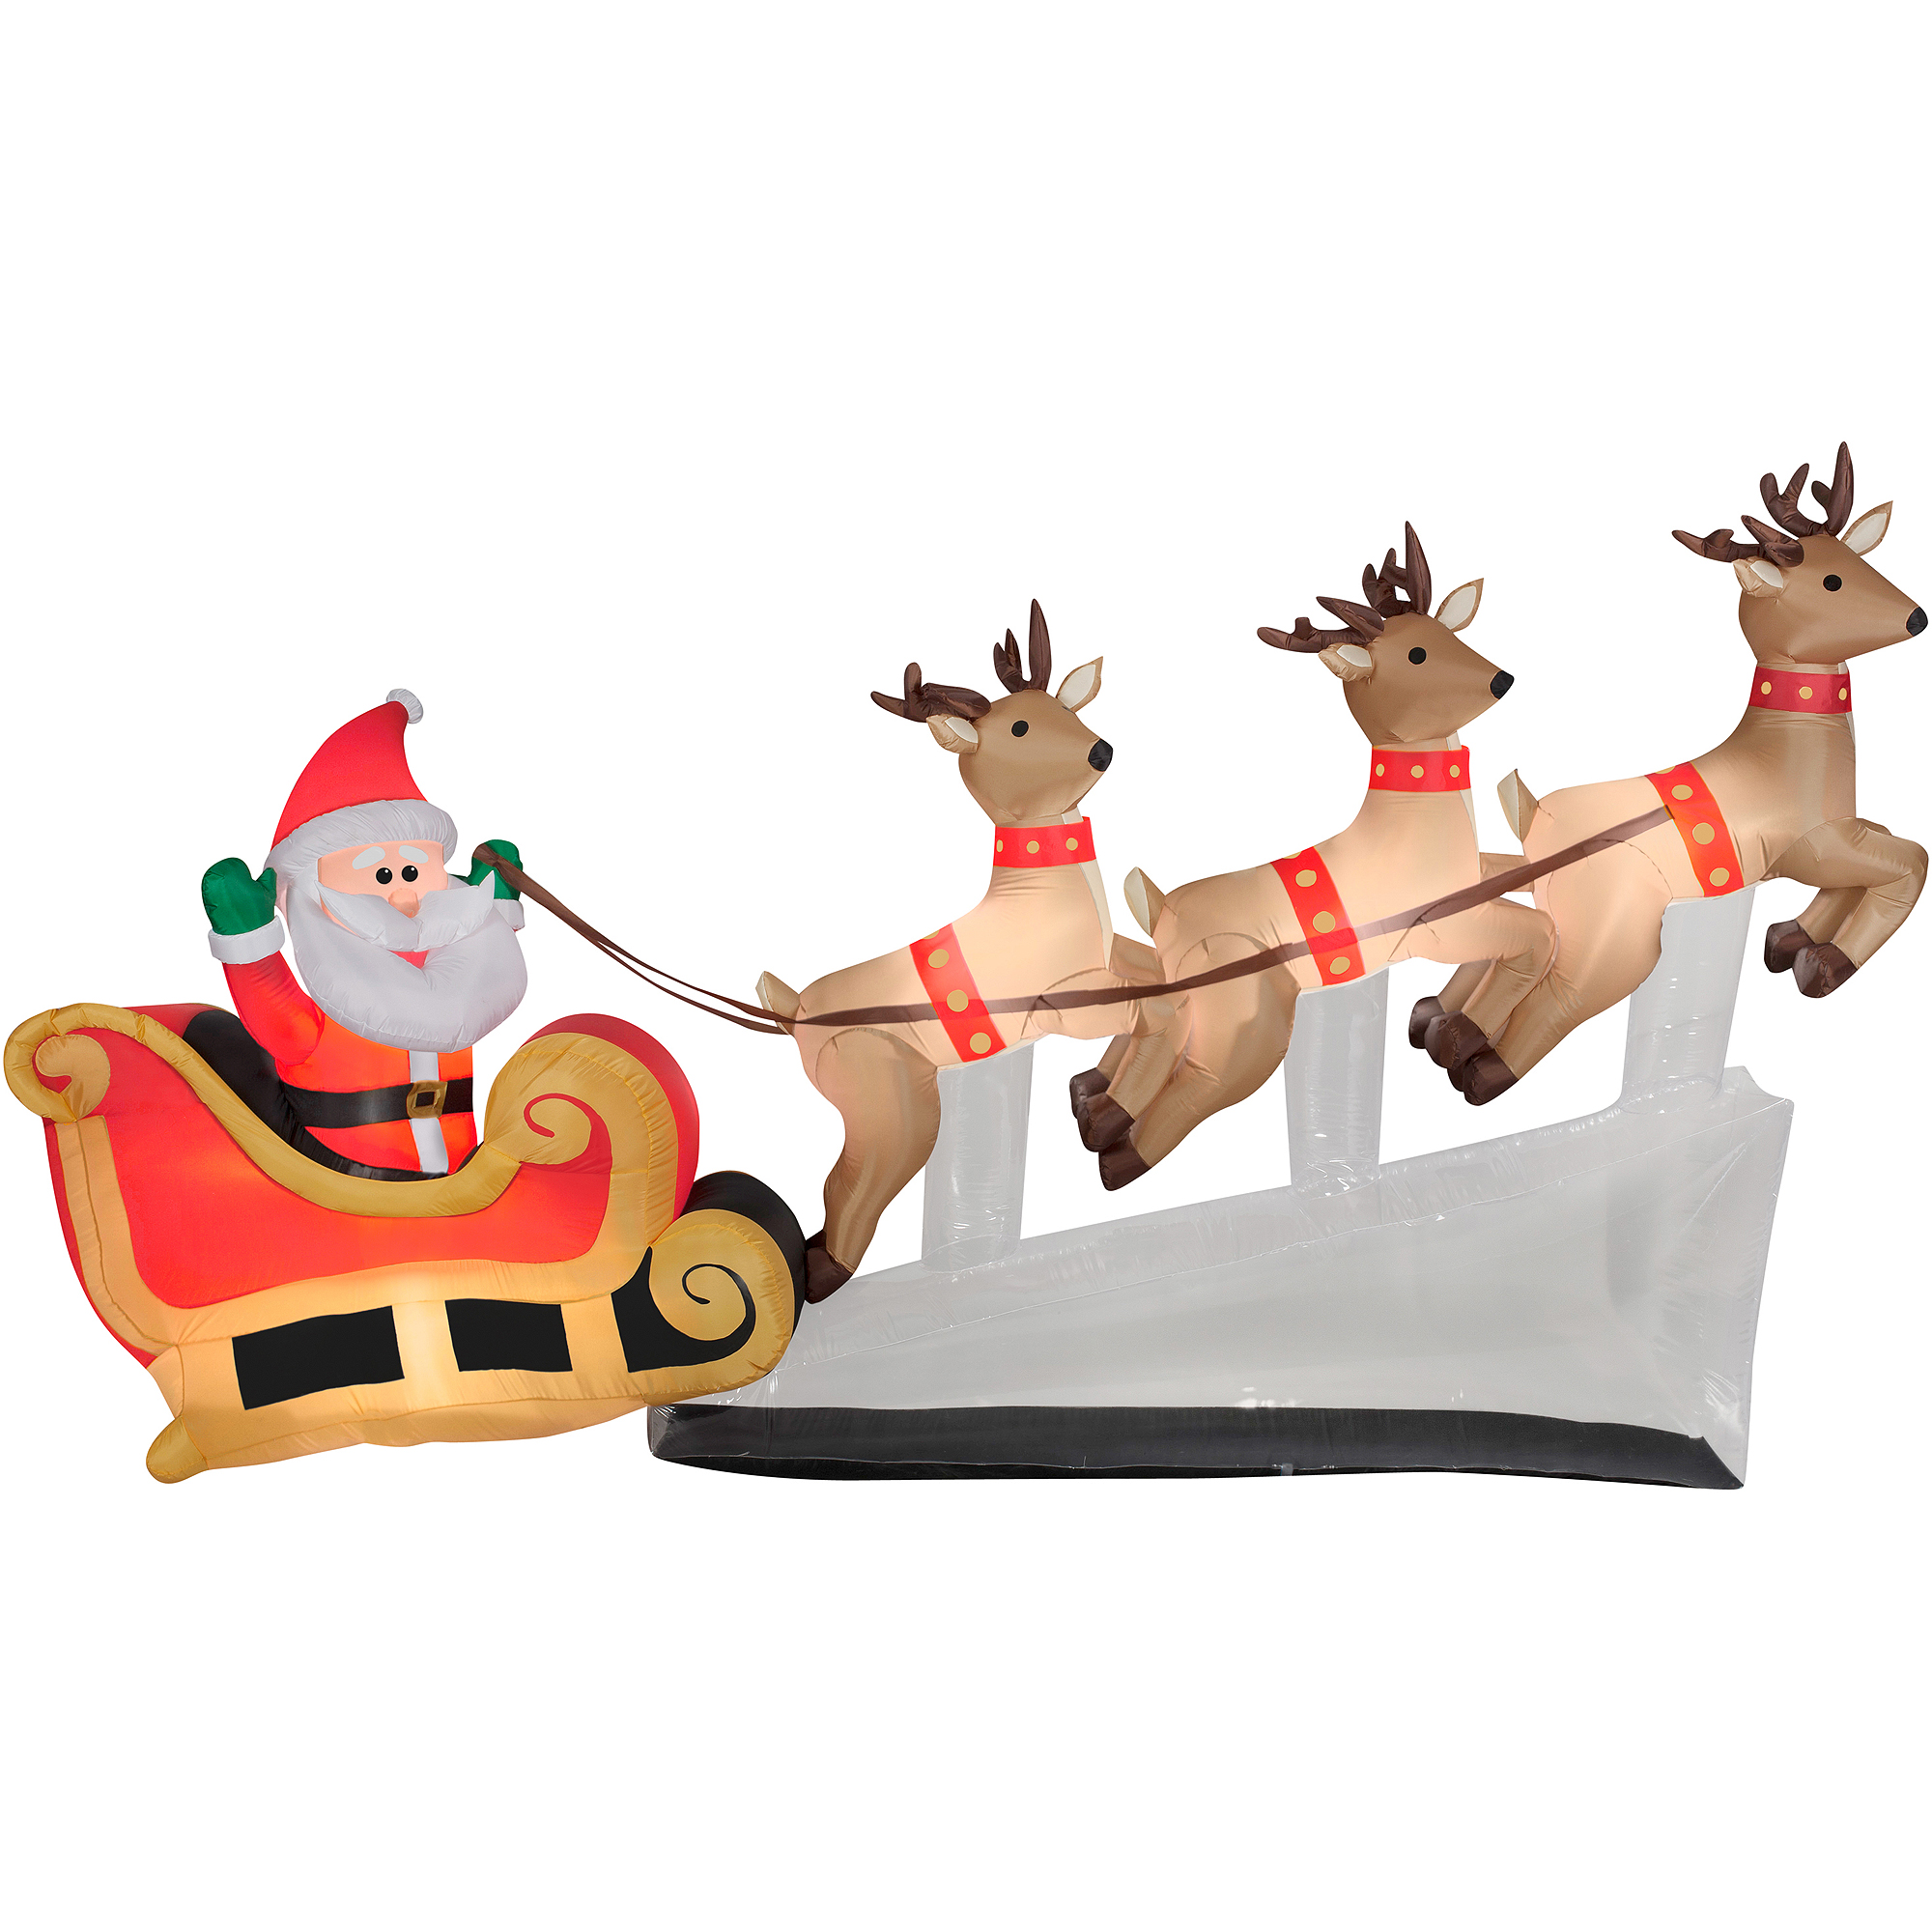 Attractive 6u0027 Floating Santa Sleigh With Reindeers Airblown Inflatable Christmas Prop    Walmart.com